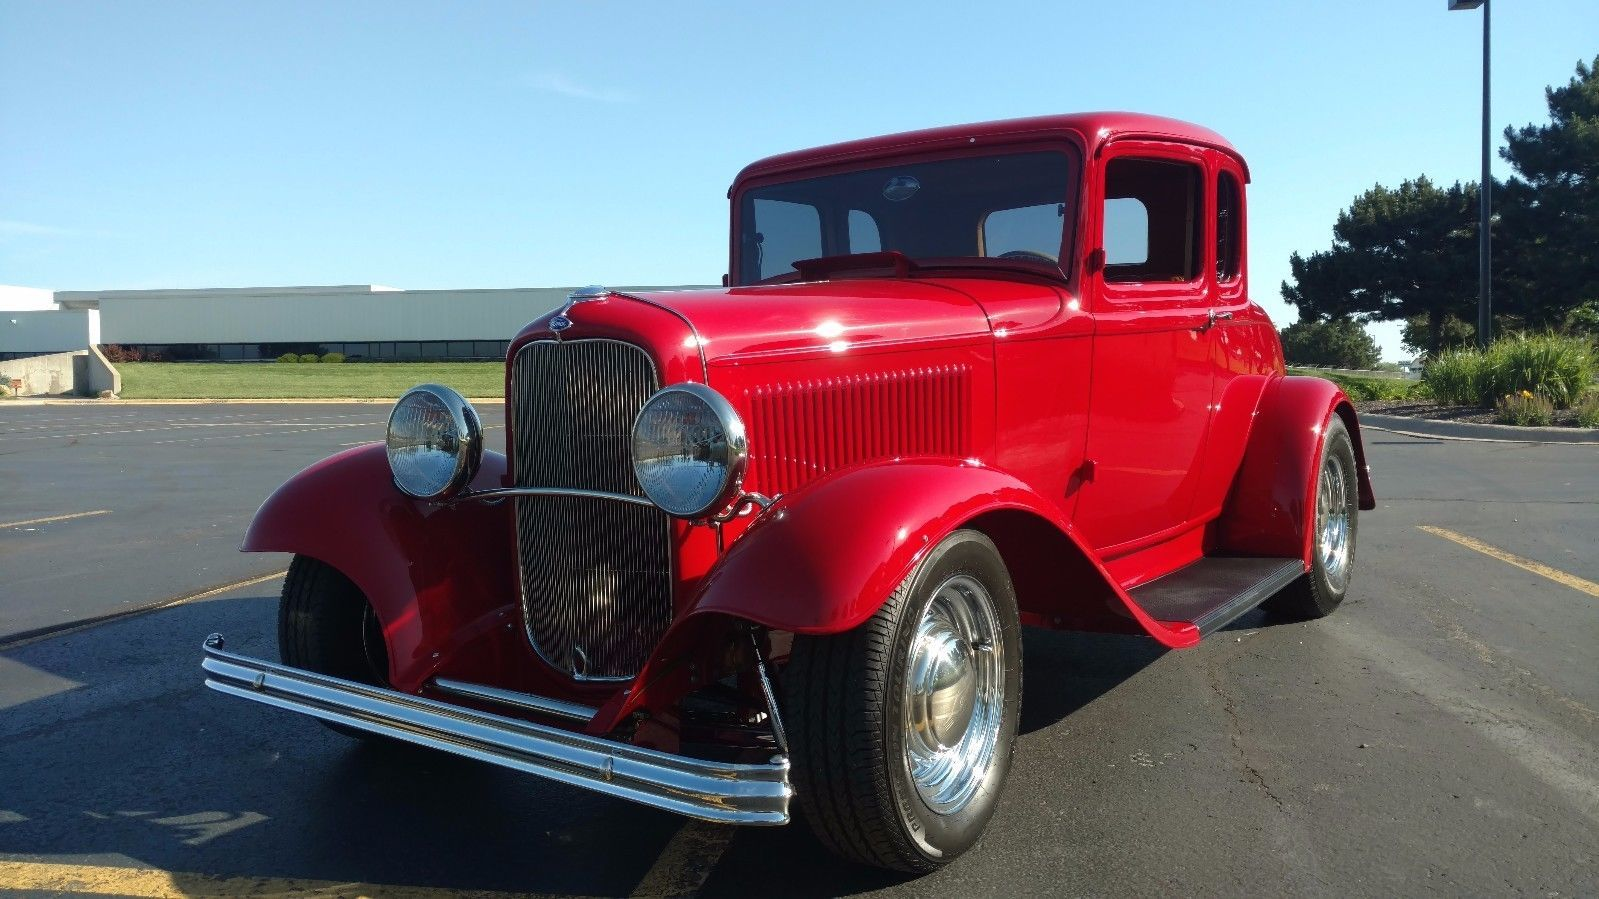 Real head turner 1932 Ford Model 18 hot rod | Hot rods for sale ...